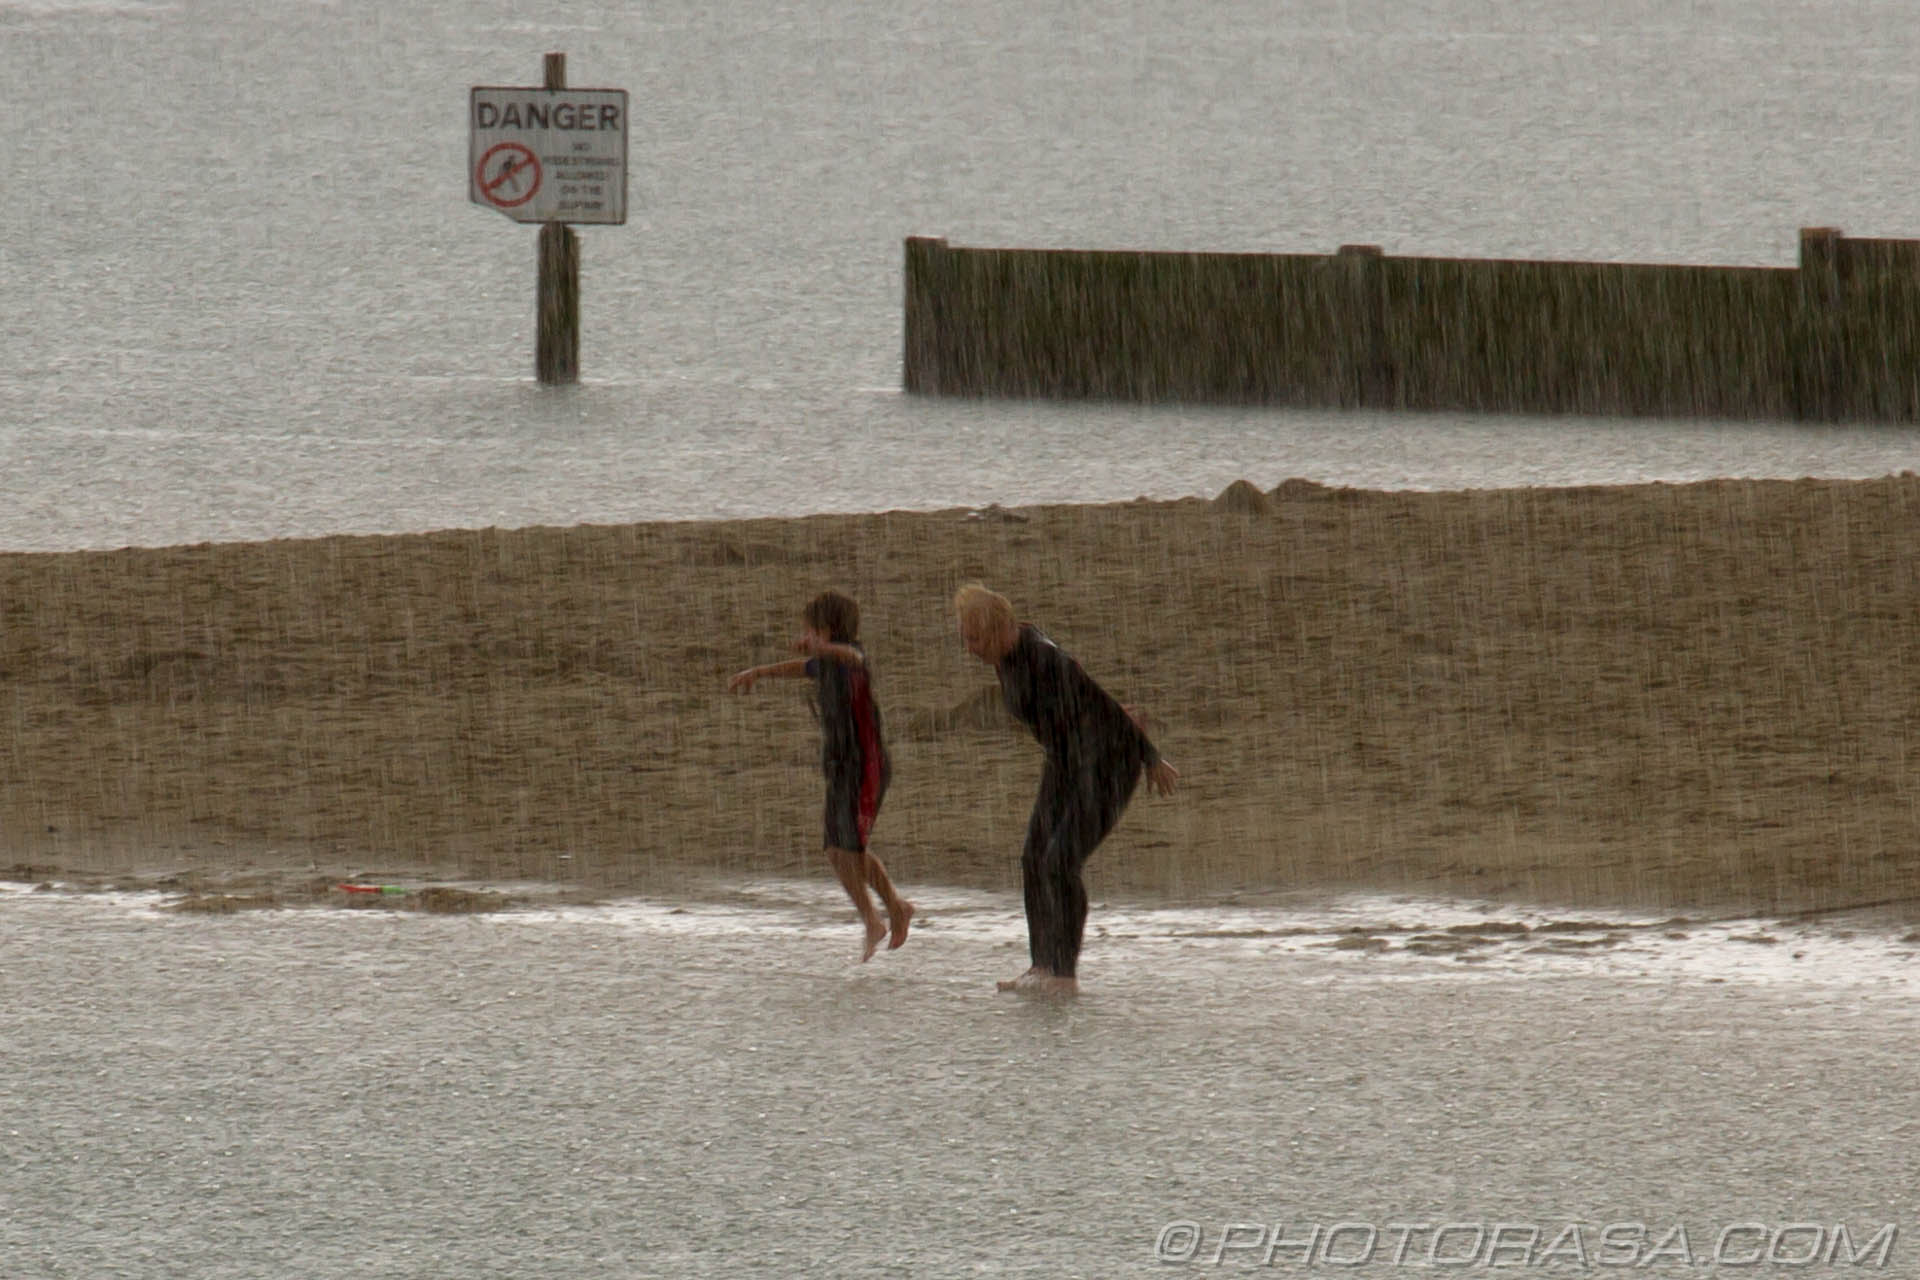 http://photorasa.com/lyme-regis/playing-on-the-beach-in-a-rainstorm/